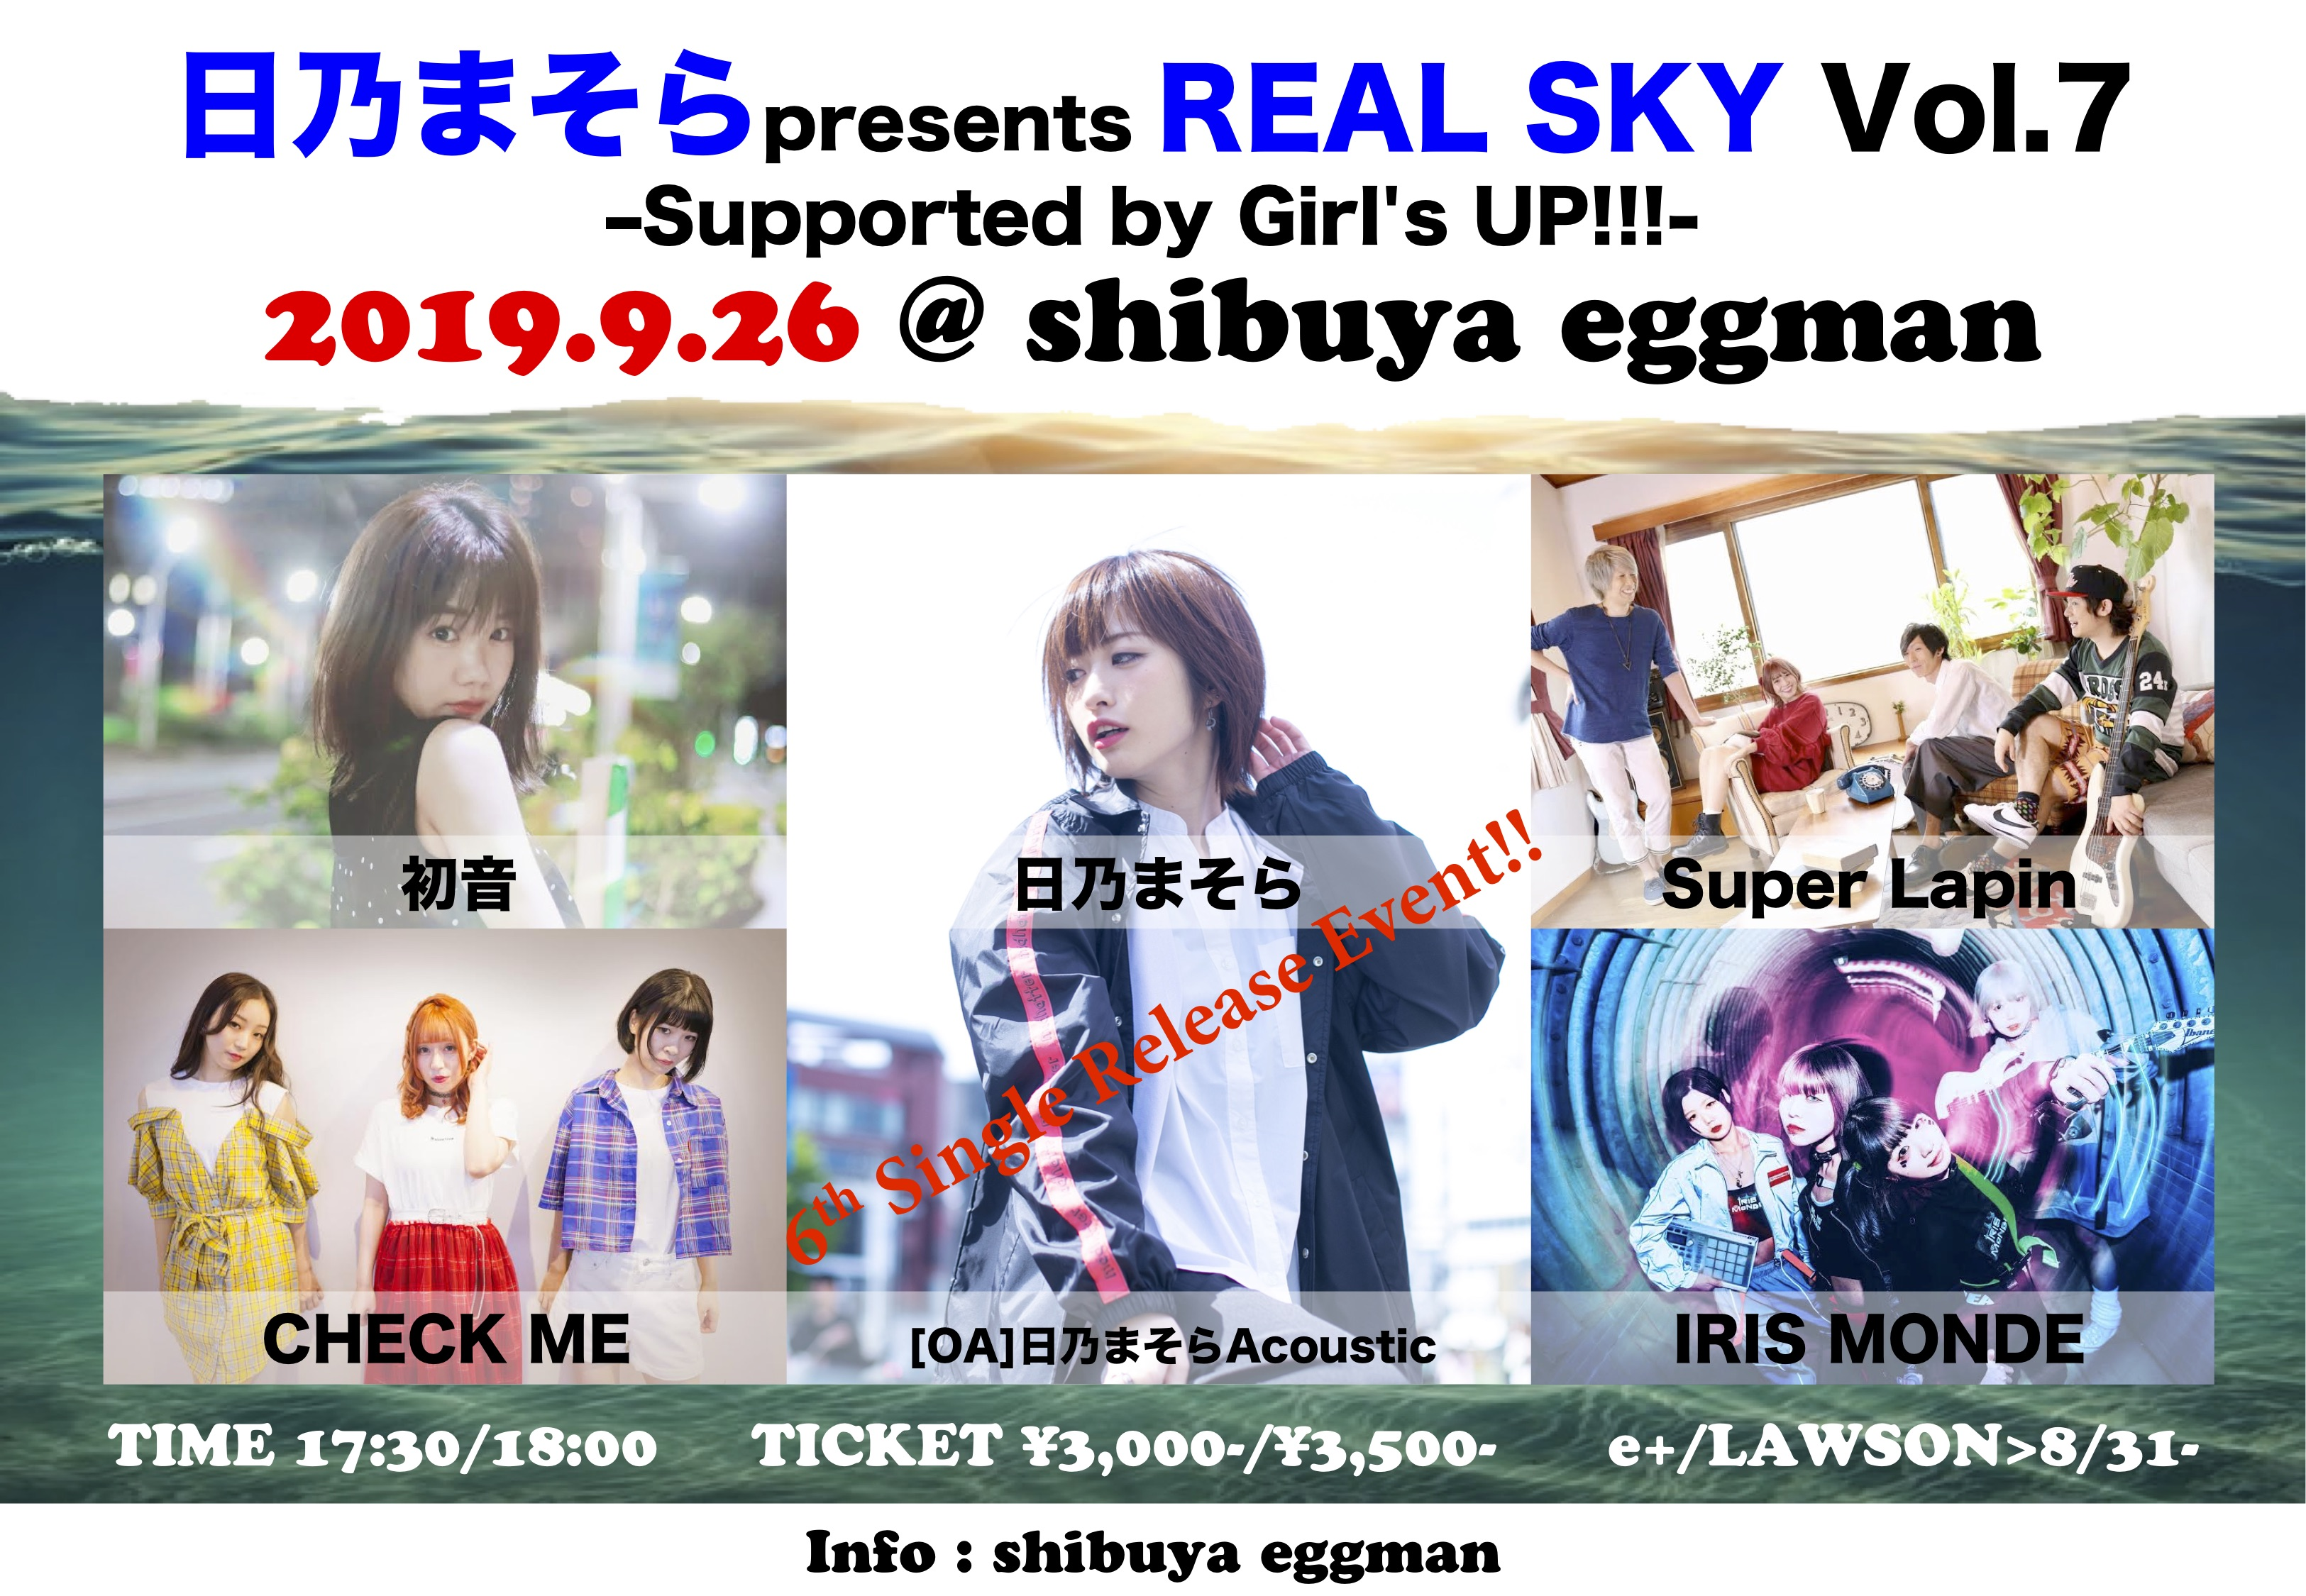 日乃まそら presents「REAL SKY Vol.7」 supported by Girl's UP!!!